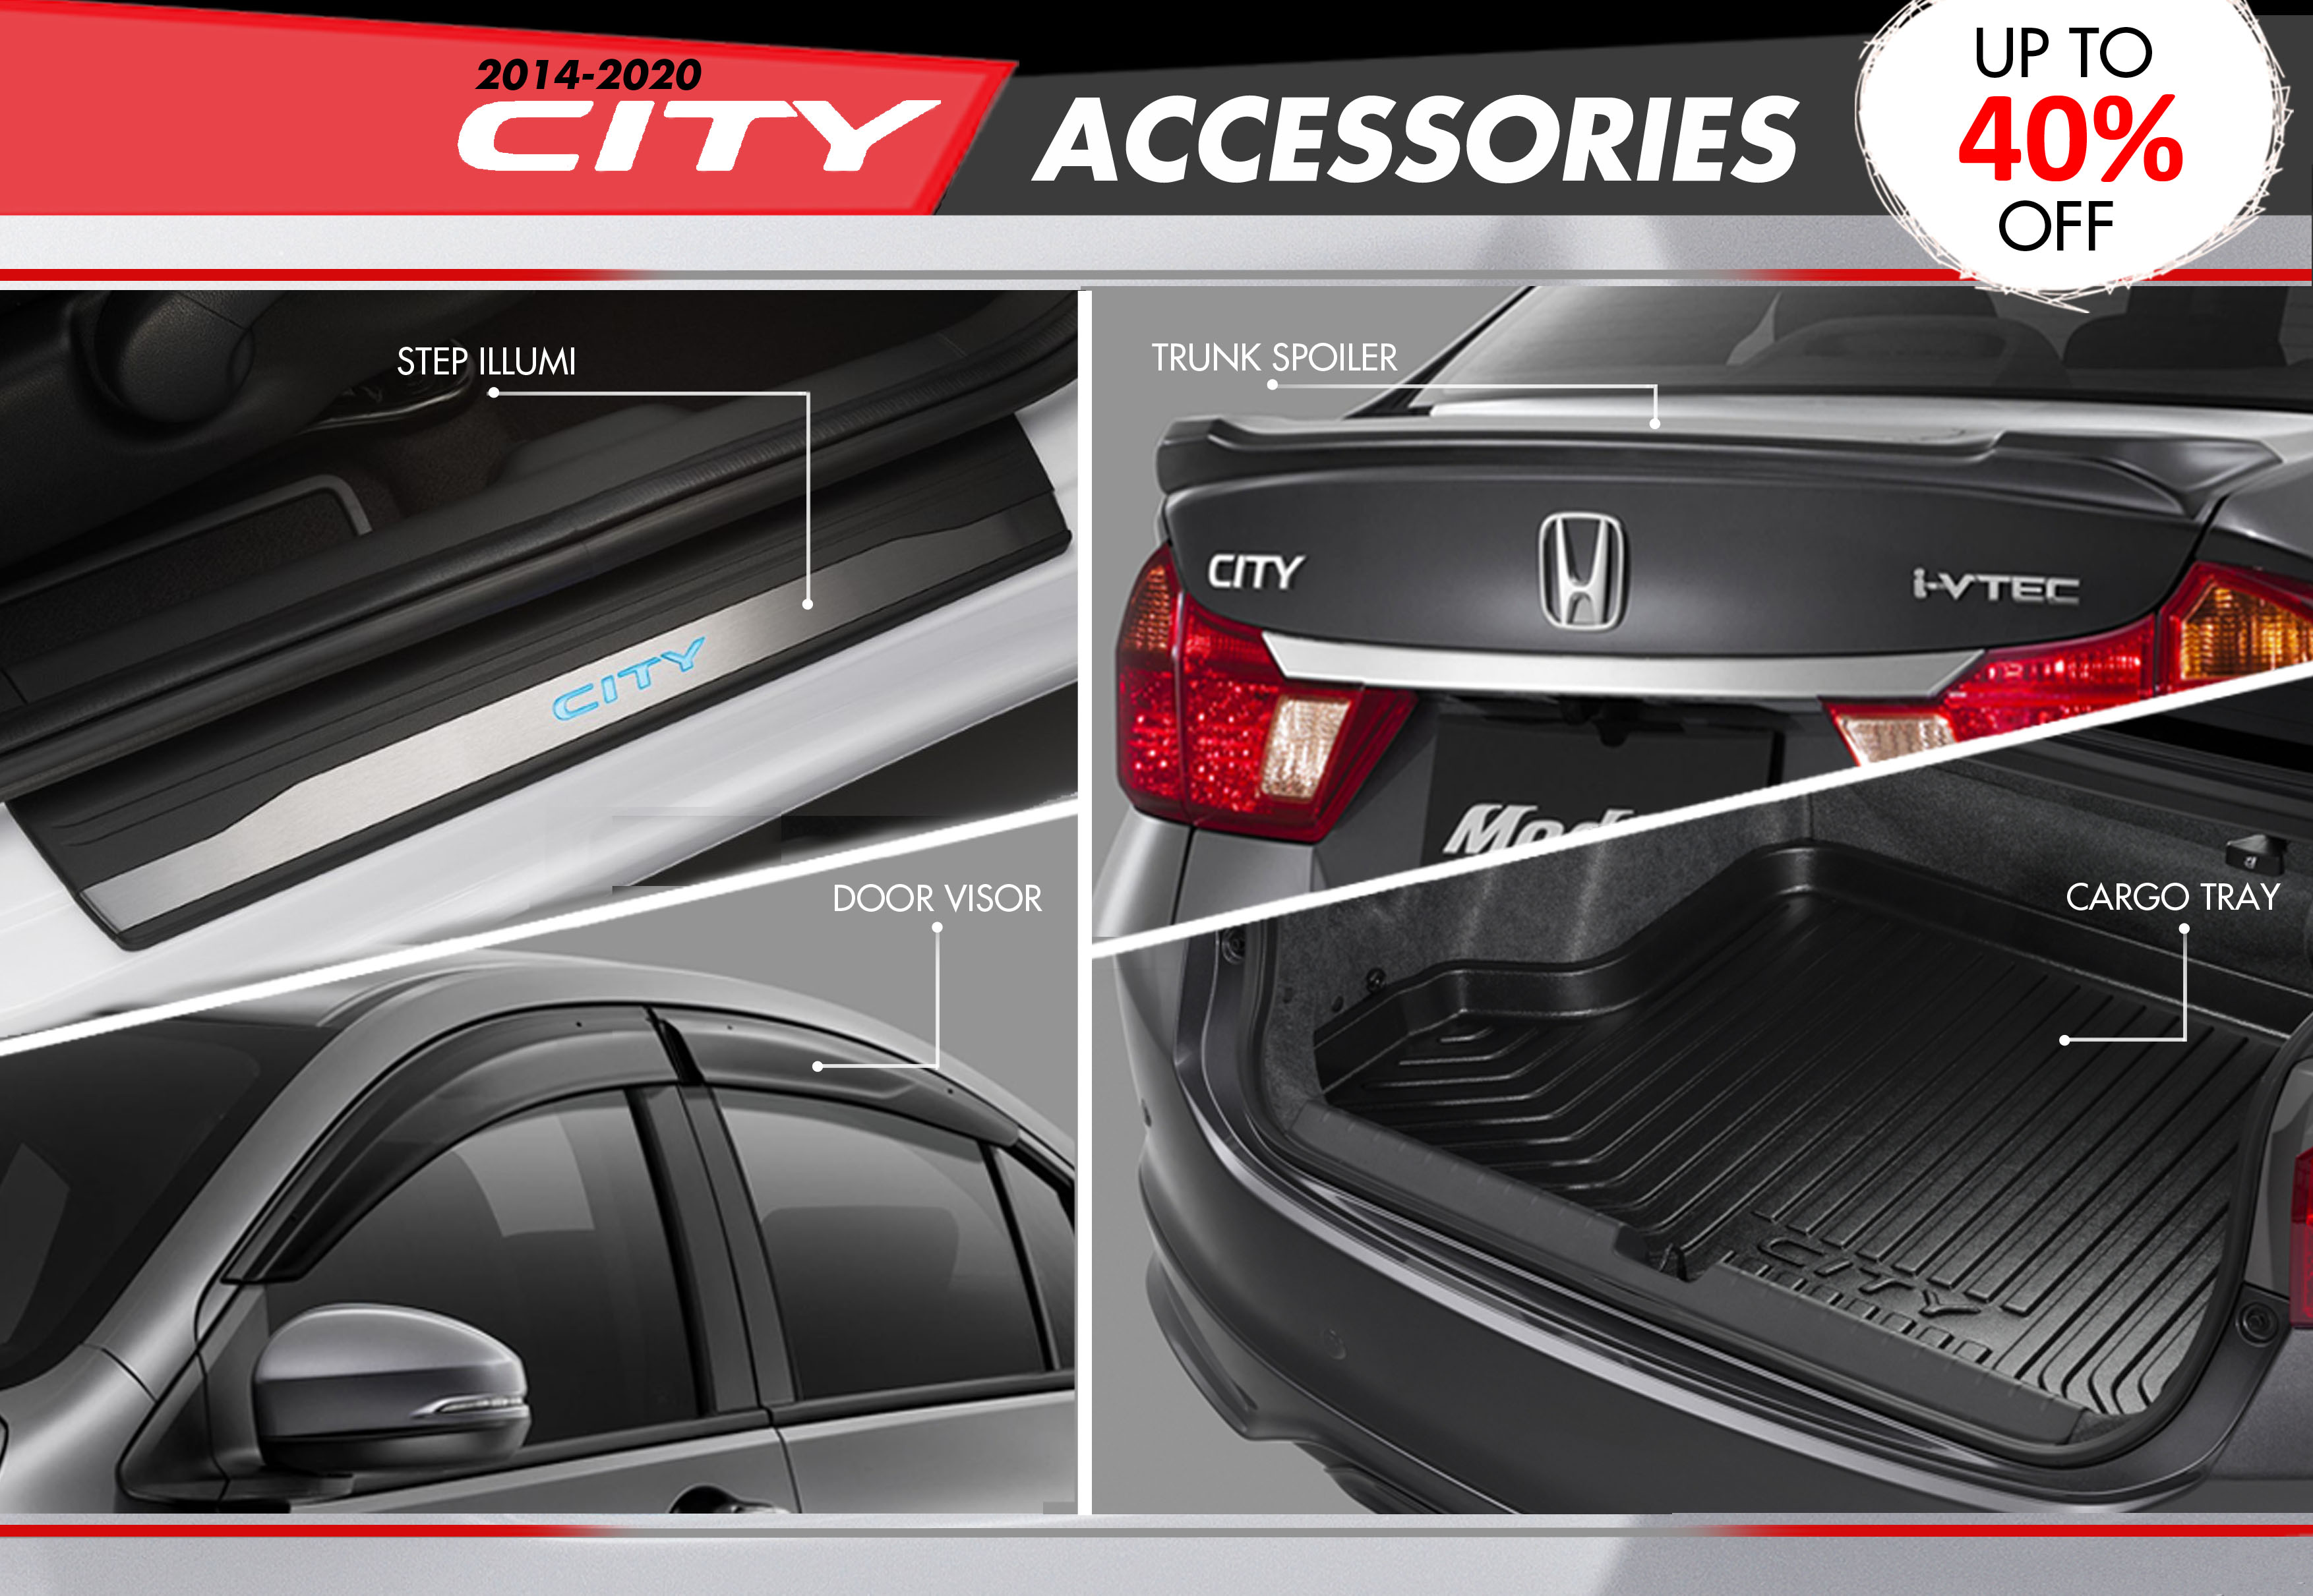 City_accessories_online1 Promotions - Honda